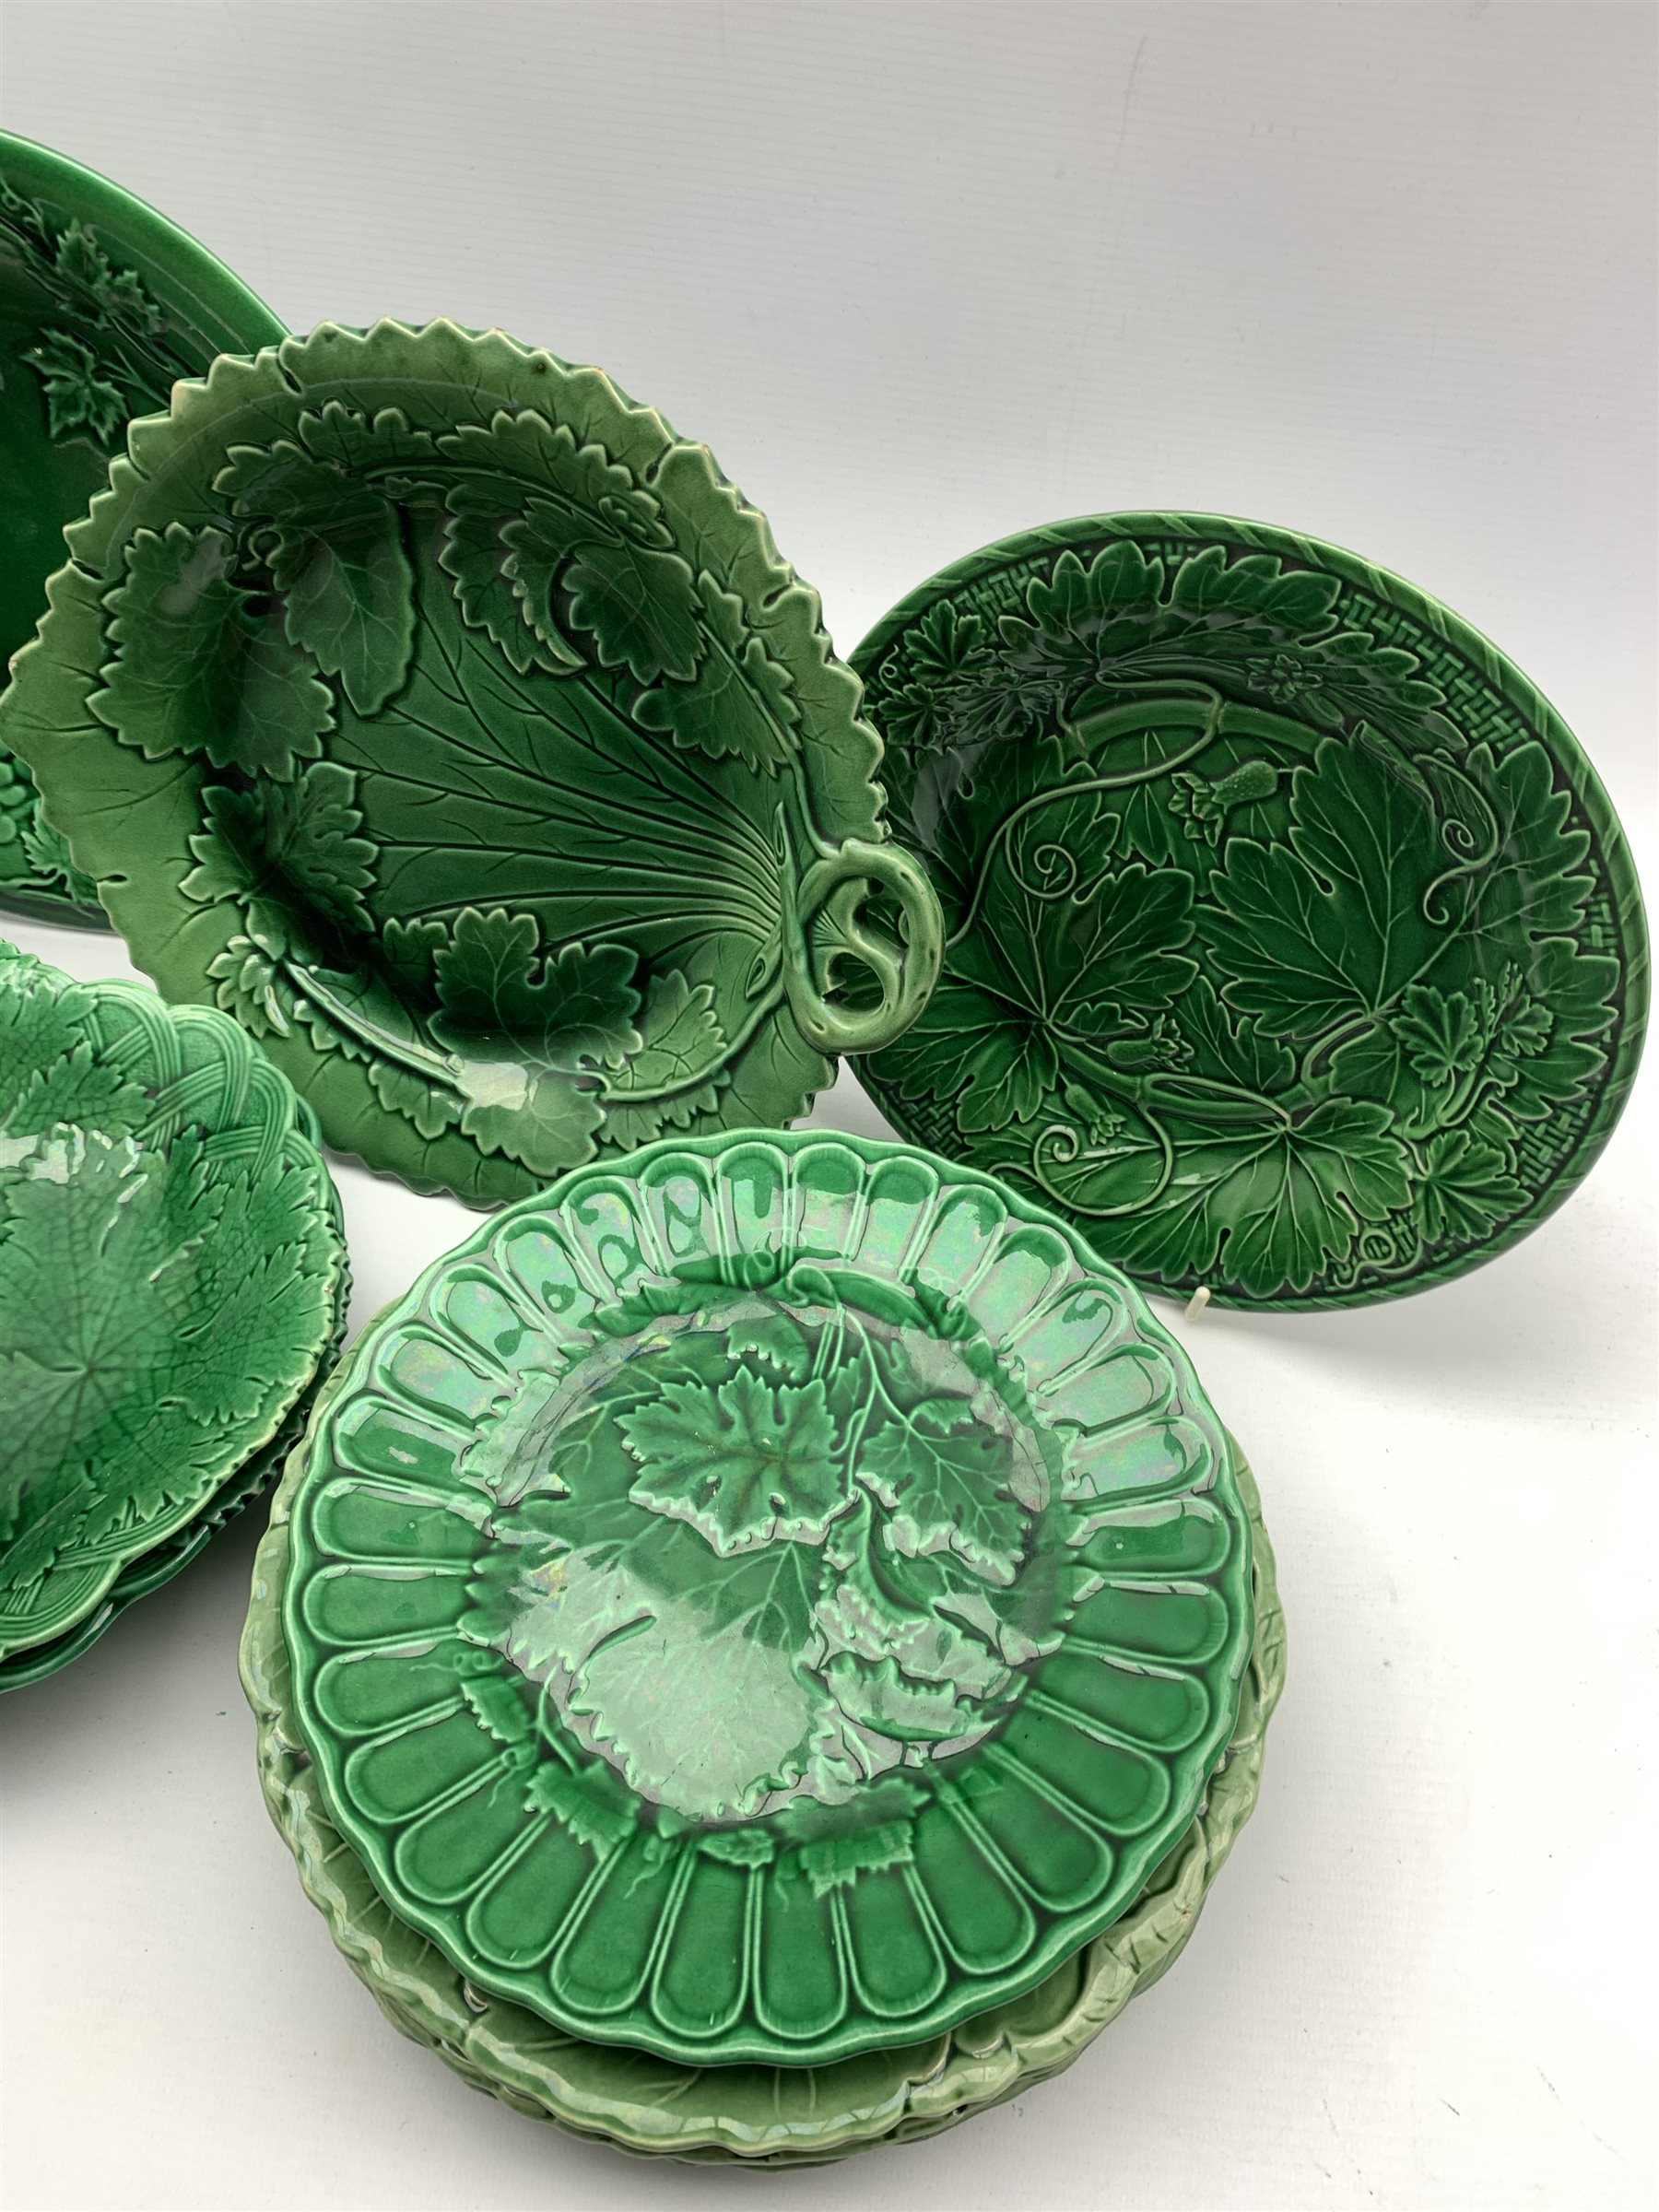 Pair of 19th century Wedgwood green glazed leaf moulded oval shallow dishes W28cm, pair of similar p - Image 2 of 5